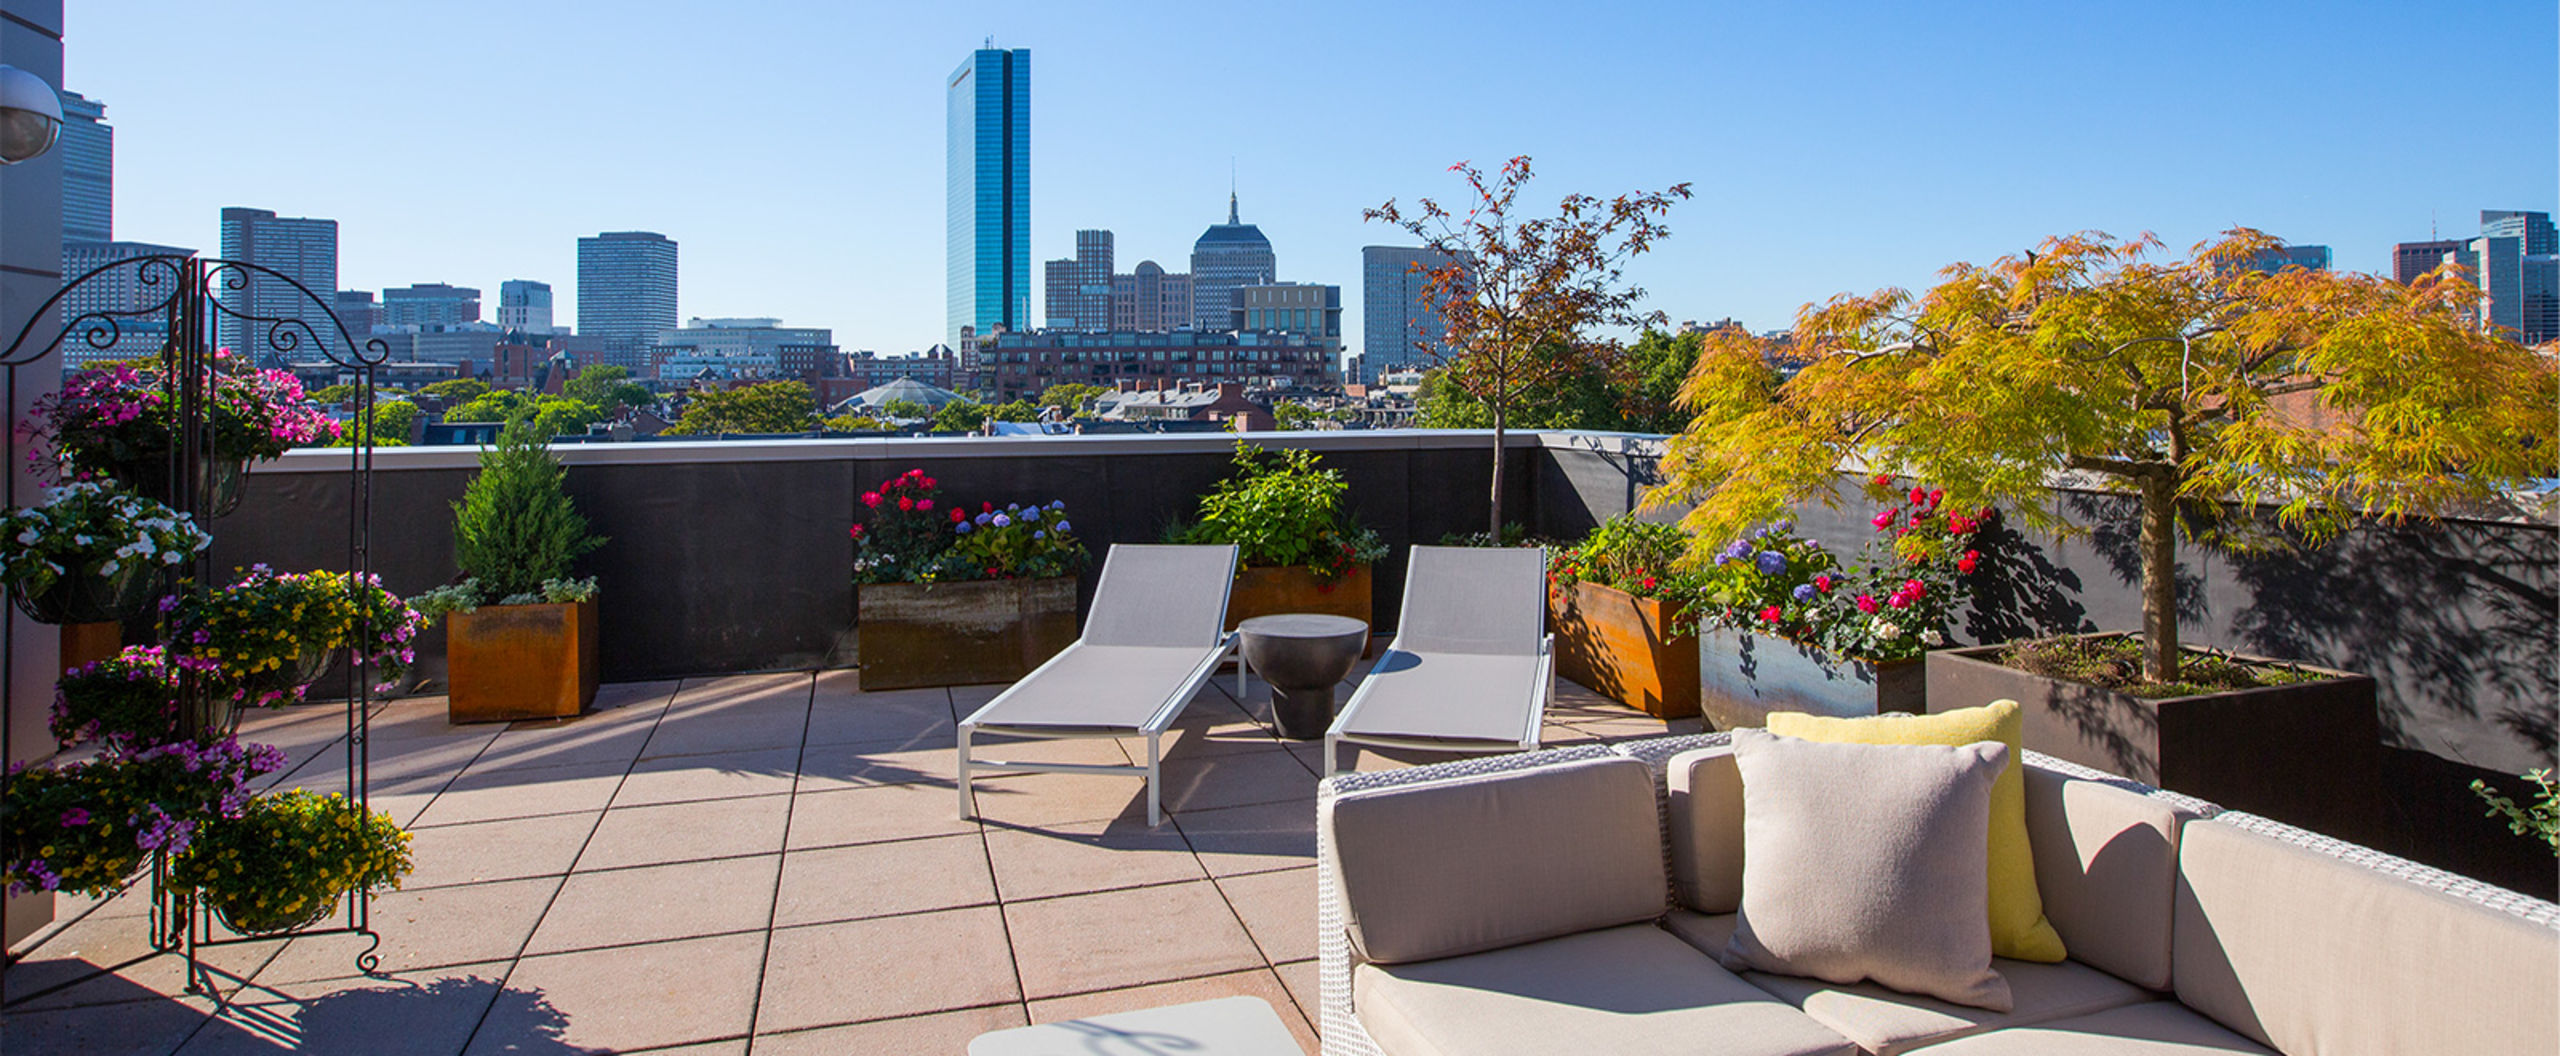 Wilkes Passage with the Most Spectacular Terrace in Boston